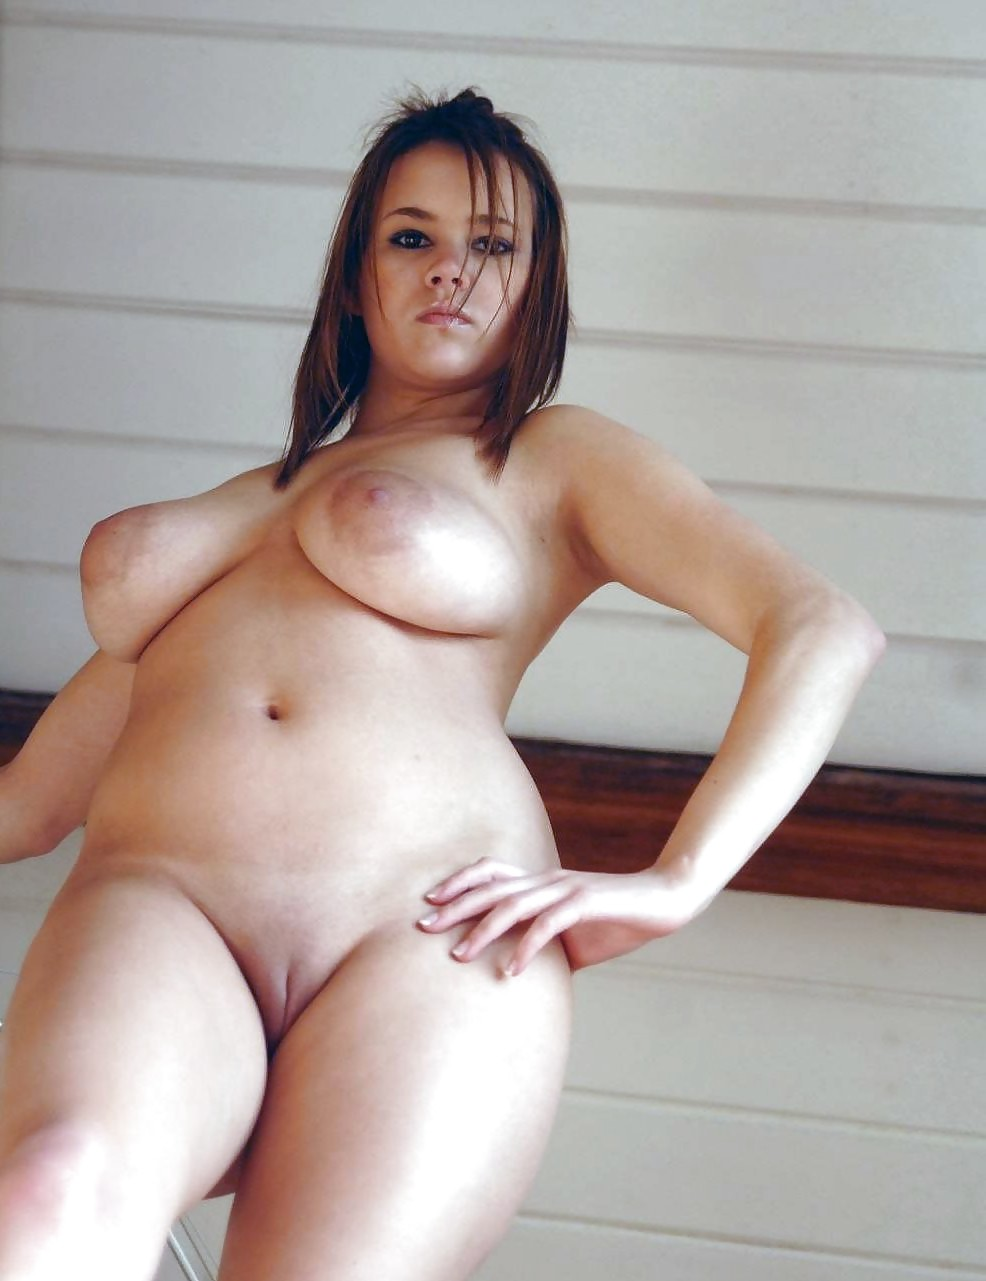 Amateur latina cleaning lady